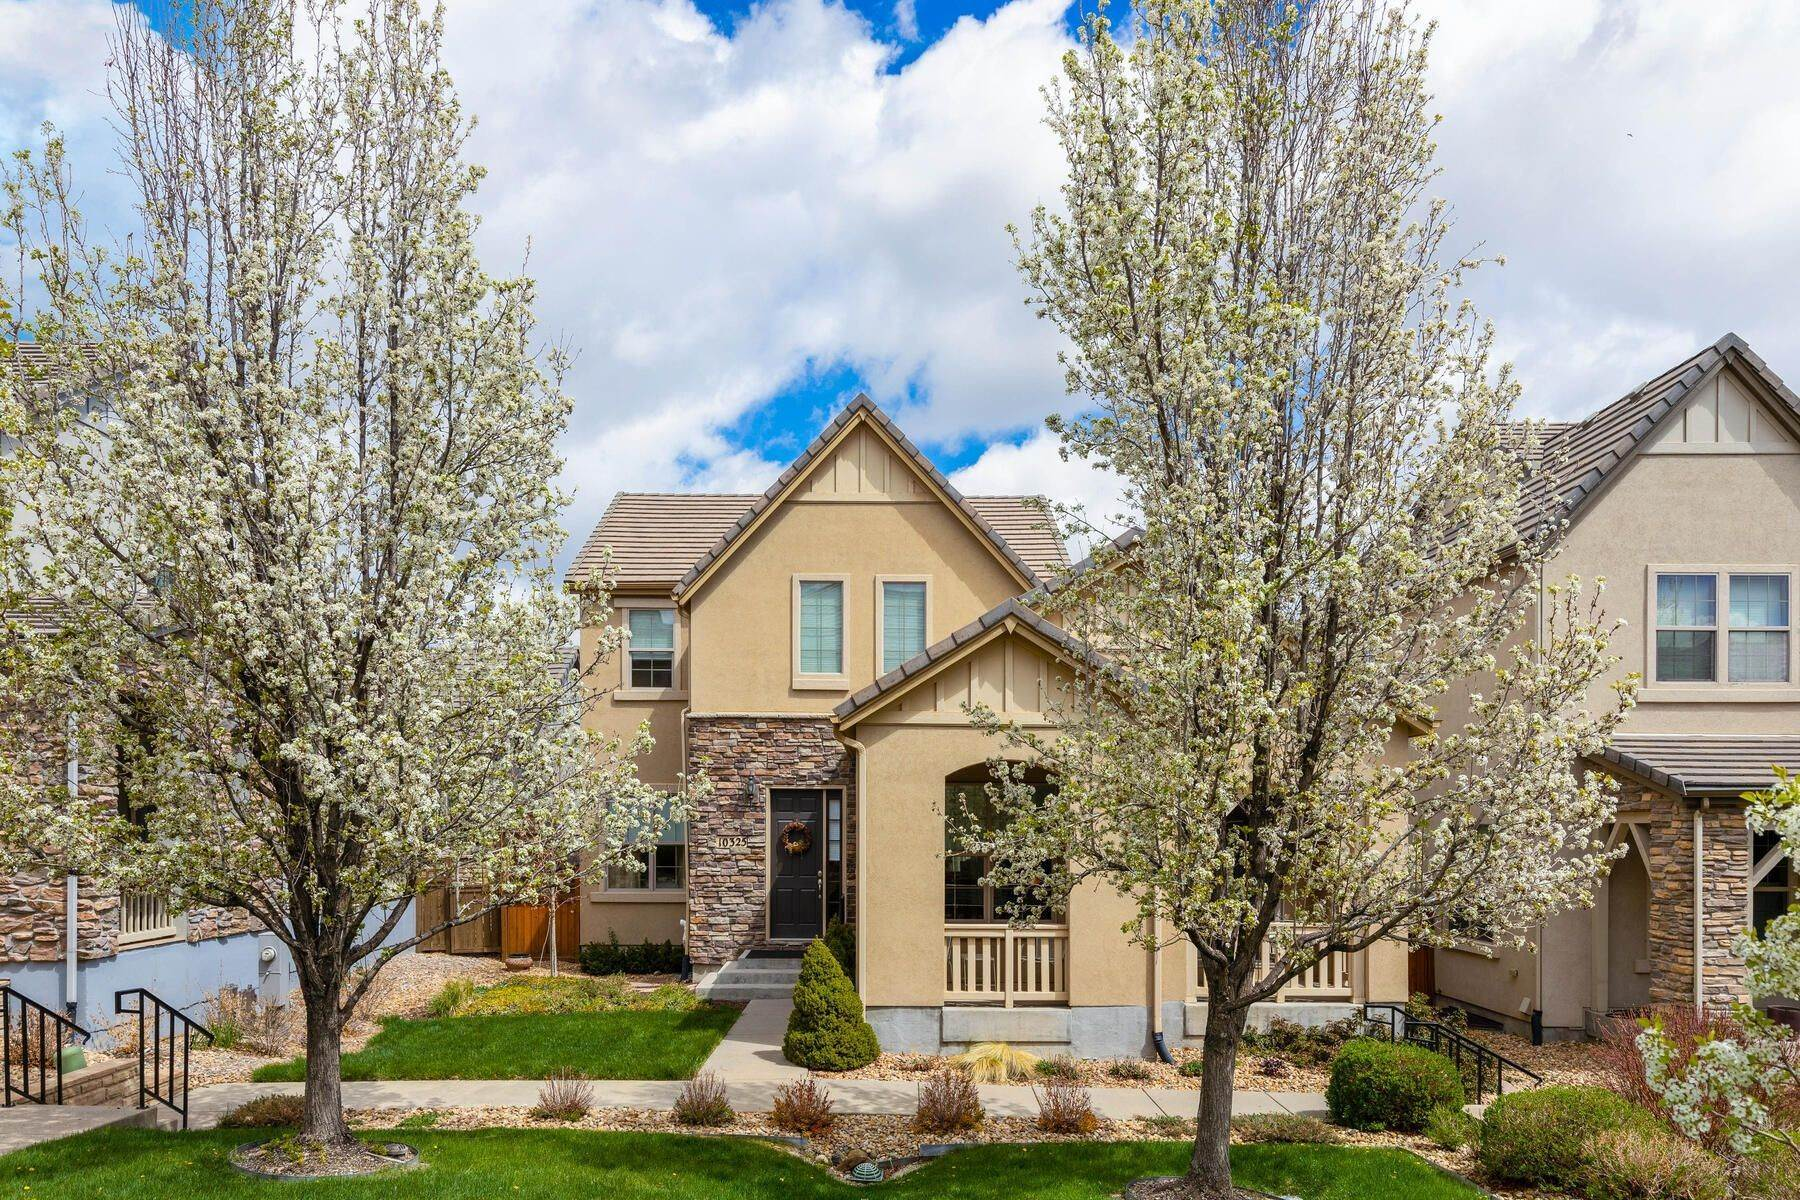 Single Family Homes for Active at 10325 Bluffmont Drive, Lone Tree, Co, 80124 10325 Bluffmont Drive Lone Tree, Colorado 80124 United States